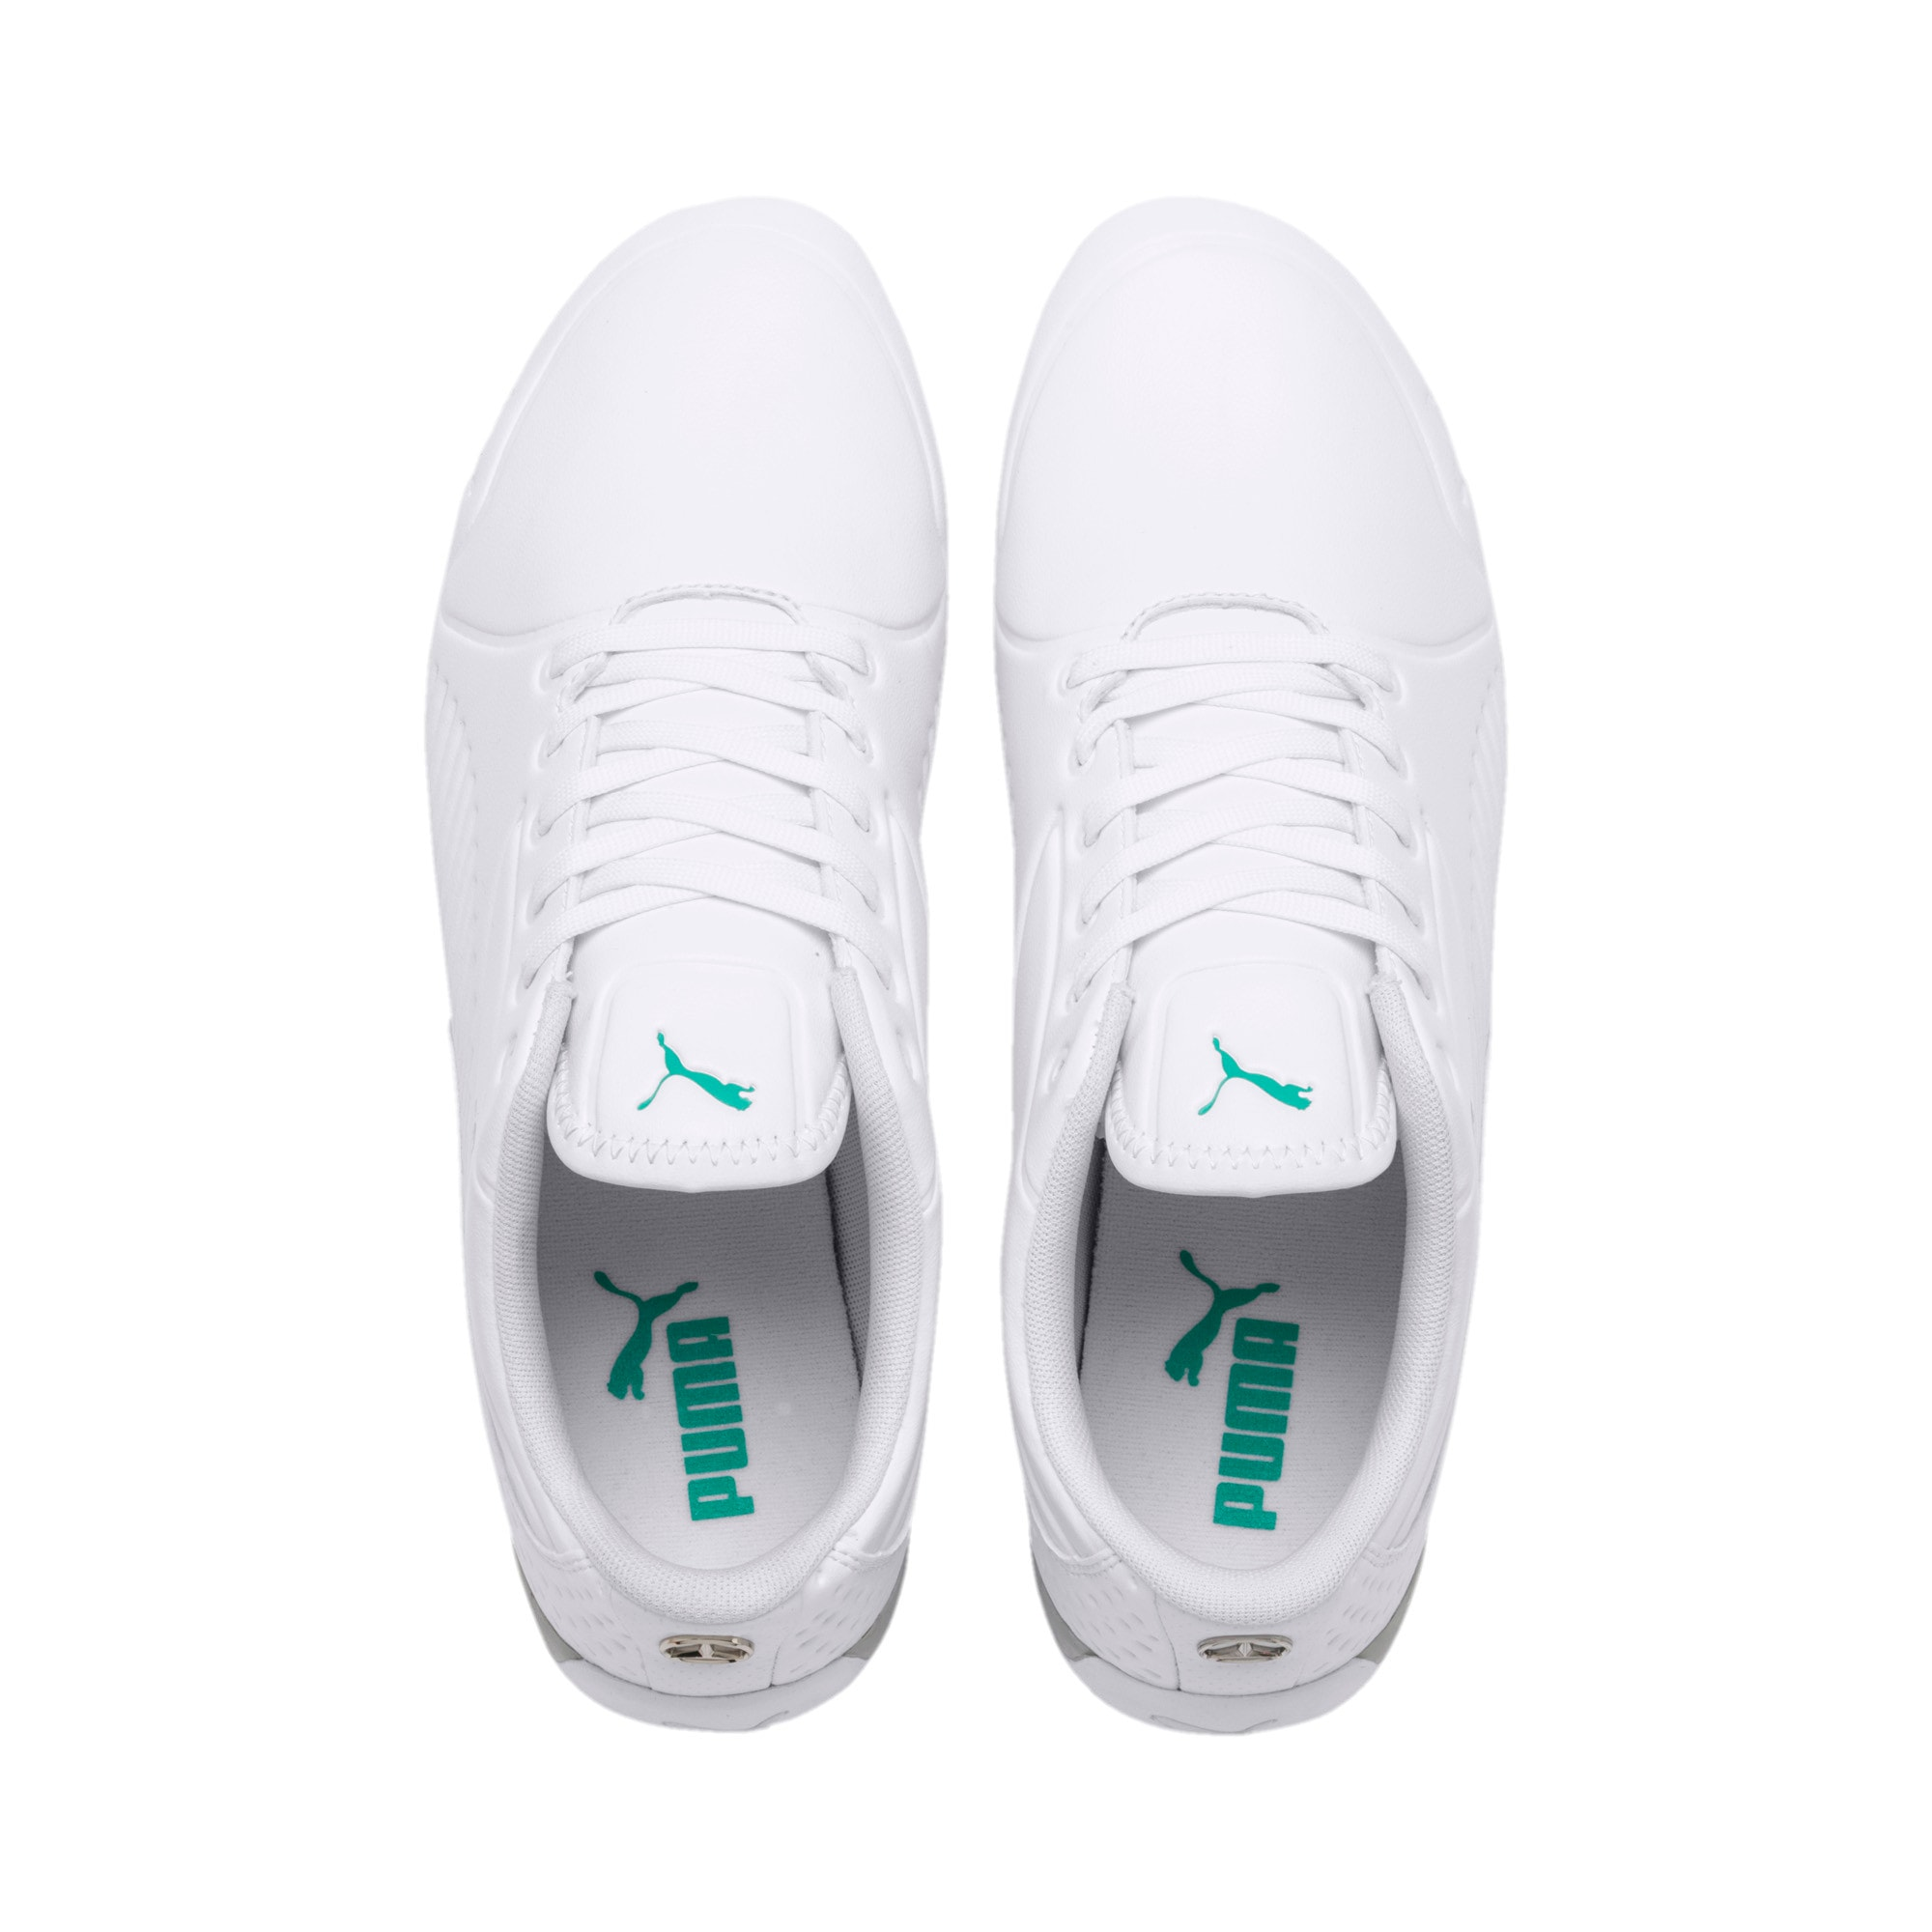 Thumbnail 7 of Mercedes AMG Petronas Drift Cat 7S Ultra Men's Shoes, Puma White-Puma White, medium